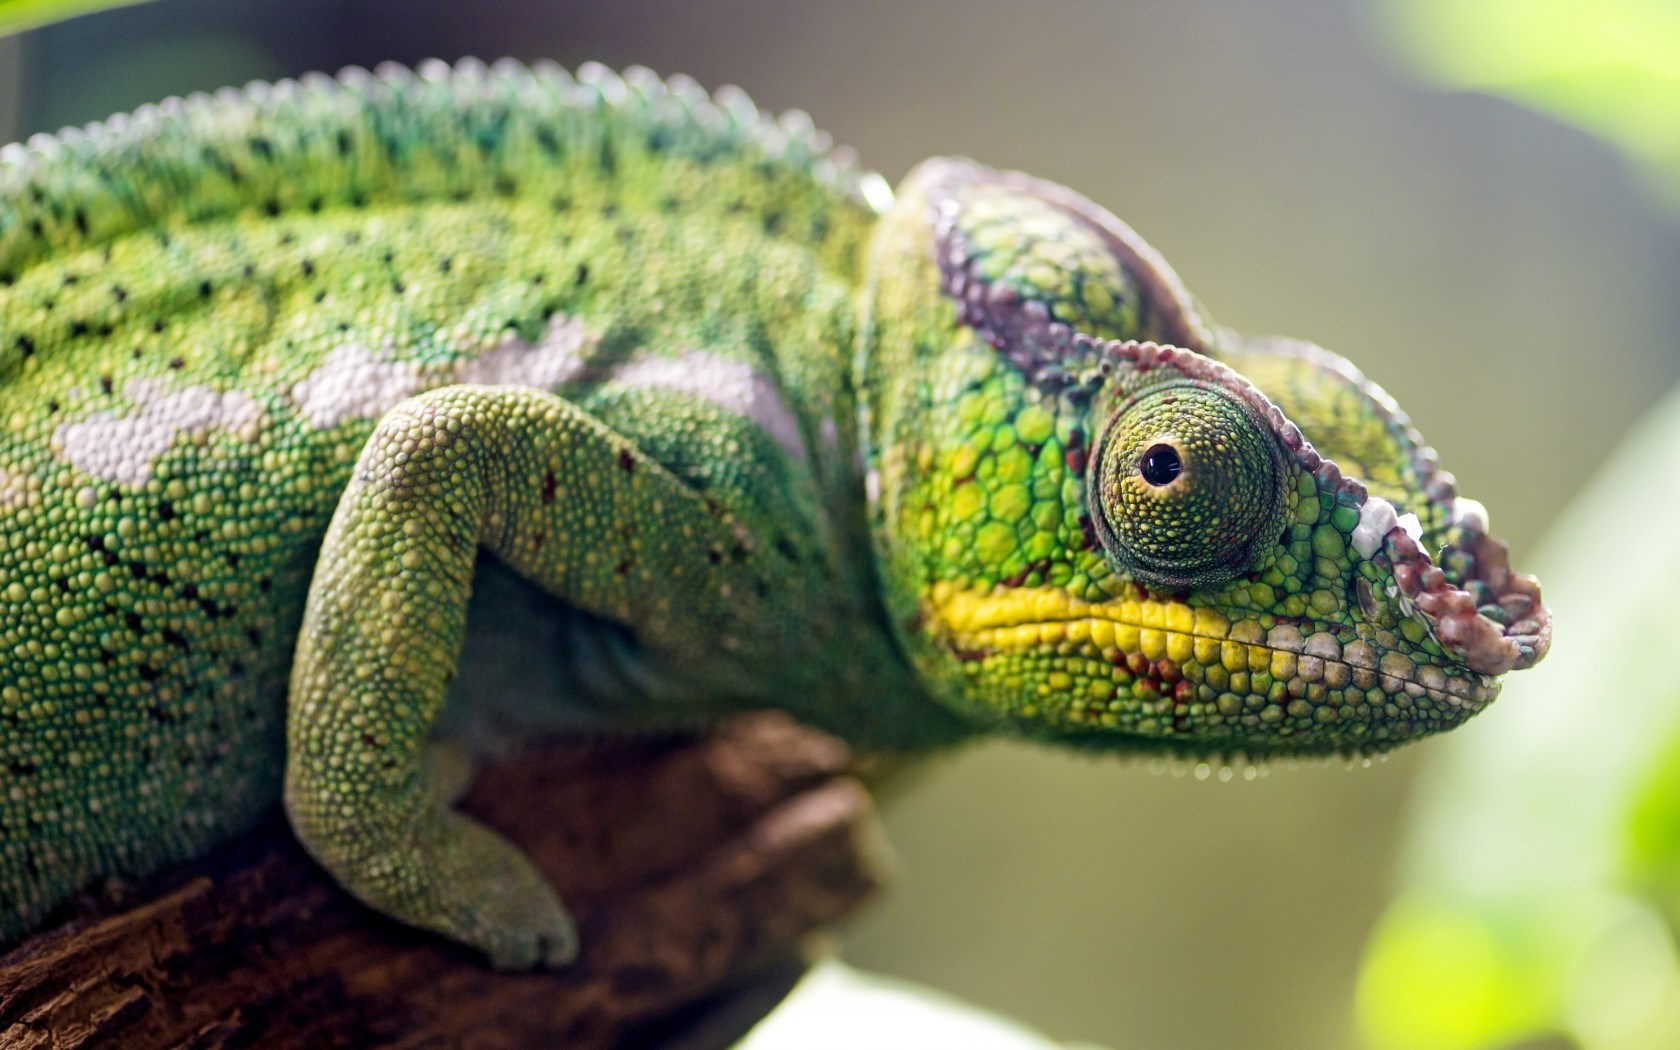 Chameleon Lizard Close-Up